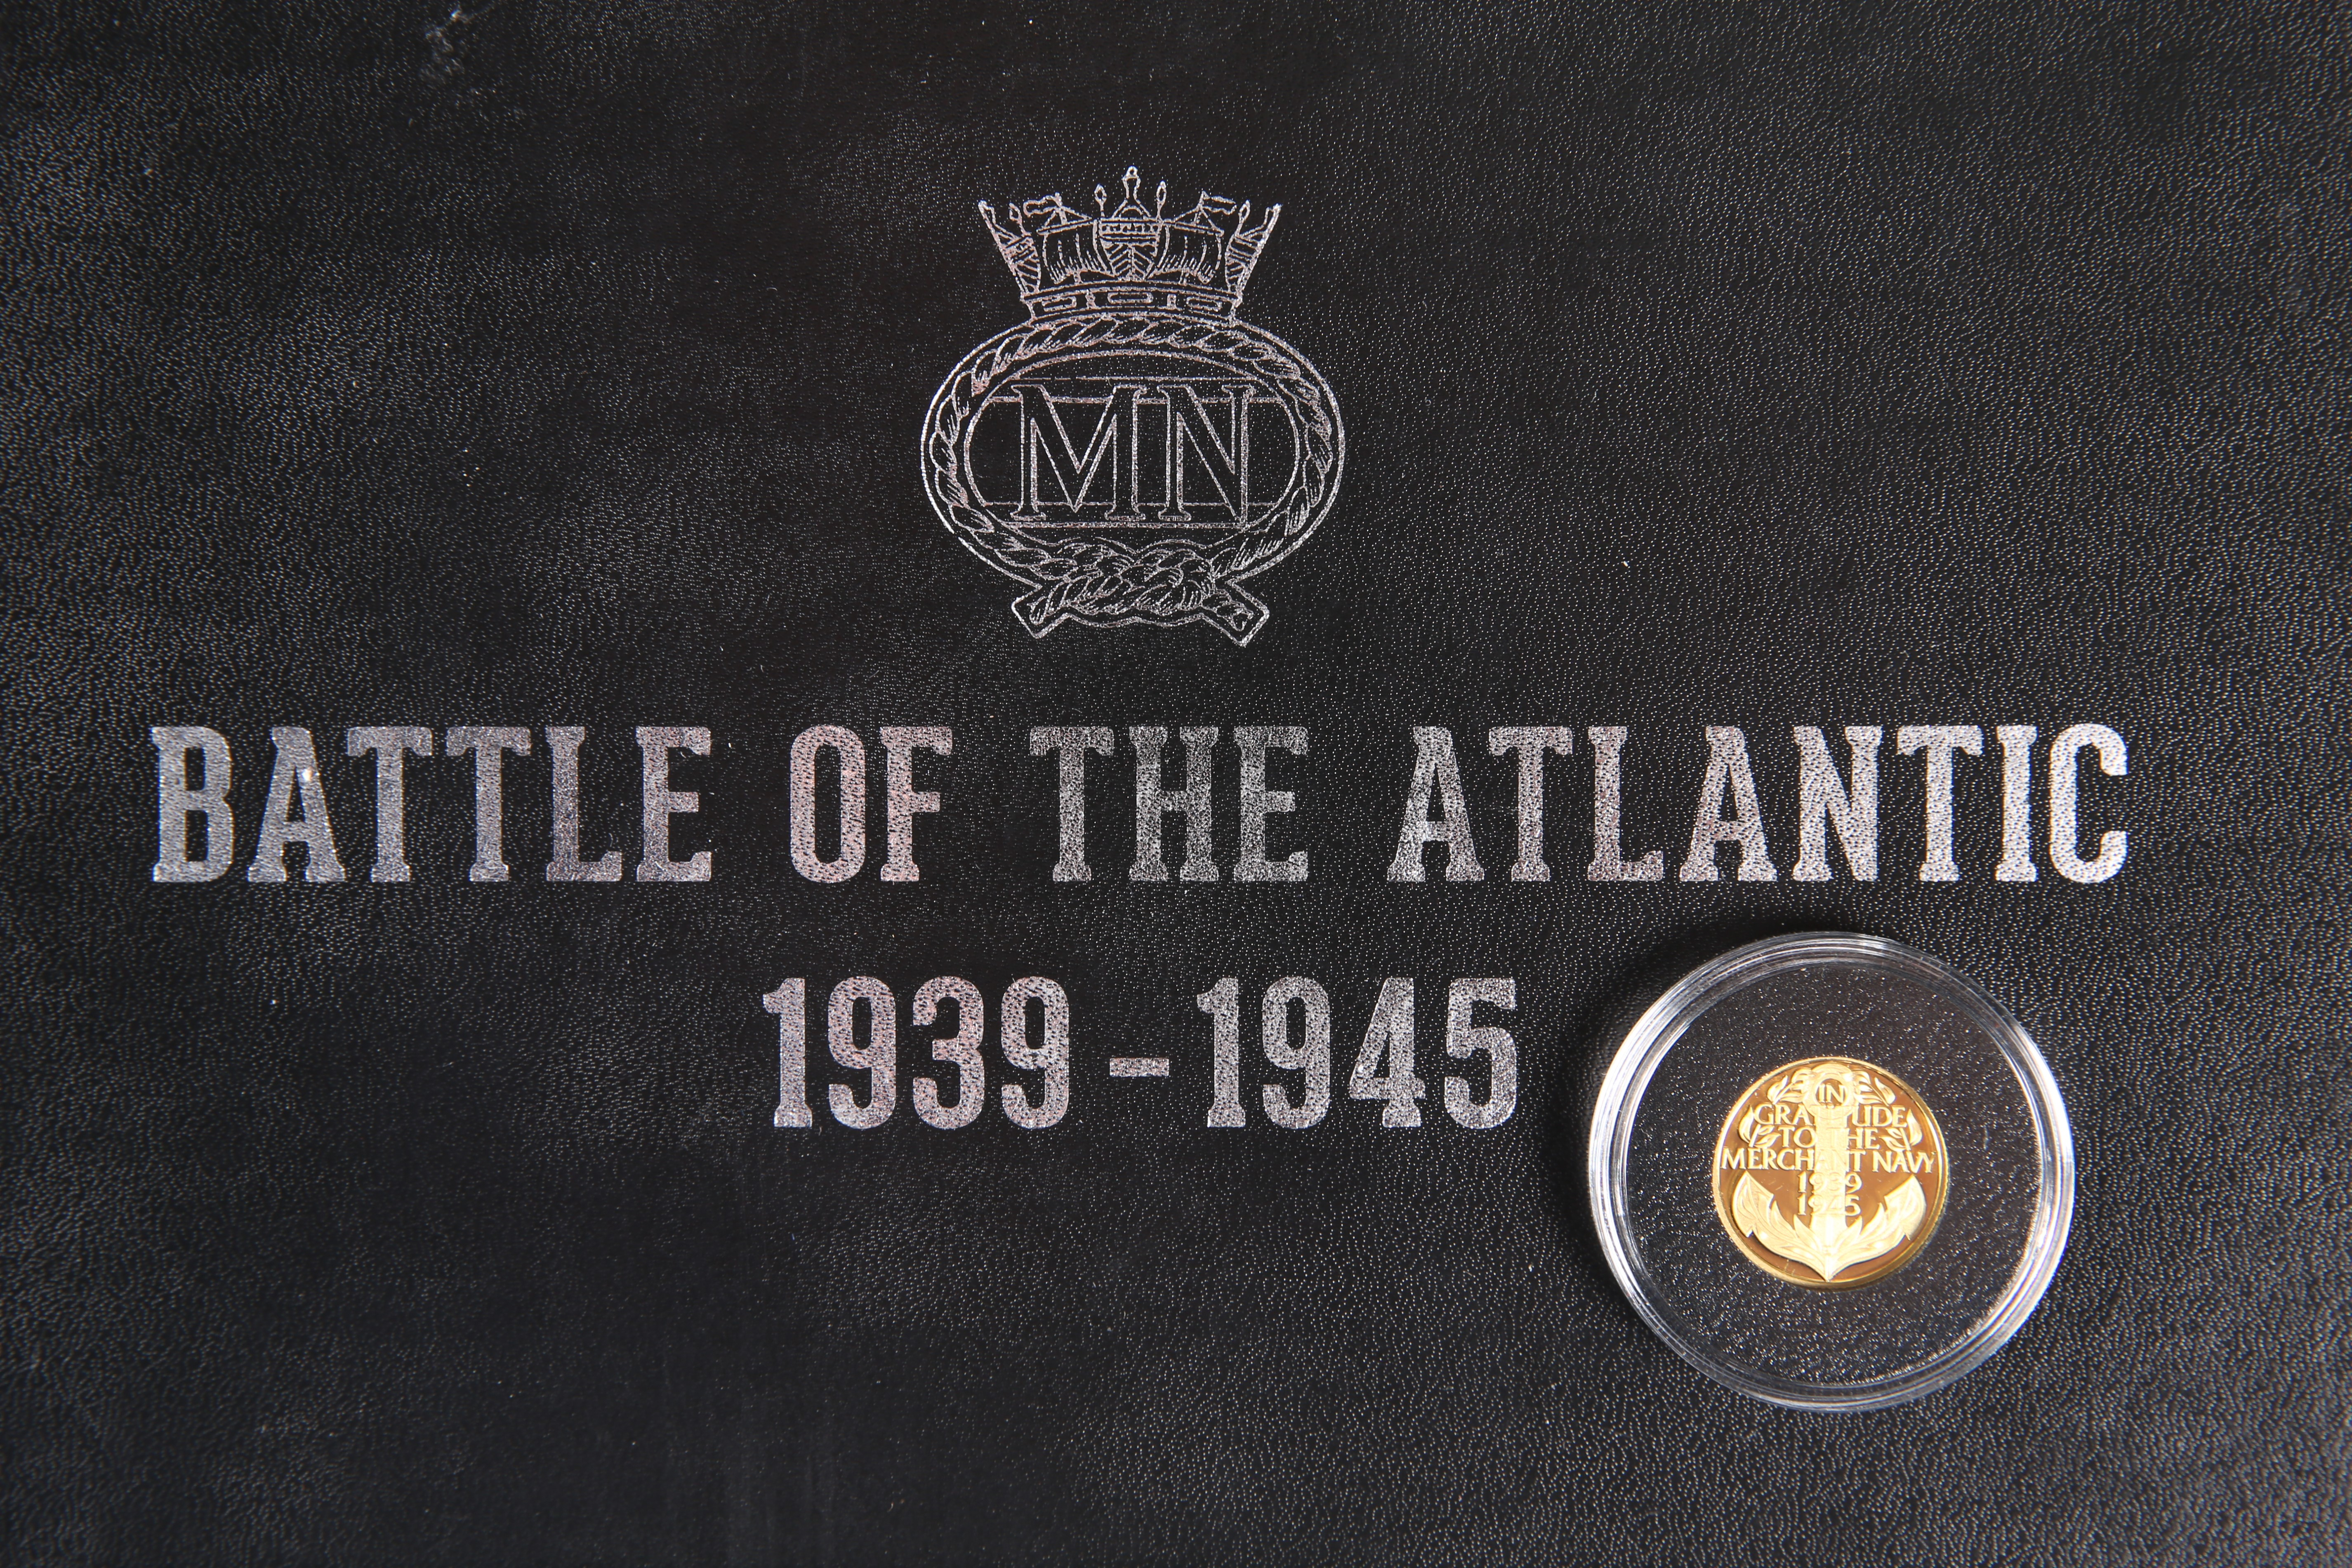 """A GOLD PROOF QUARTER CROWN, """"IN GRATITUDE TO THE MERCHANT NAVY 1939-1945"""", boxed, with certificate - Image 2 of 3"""